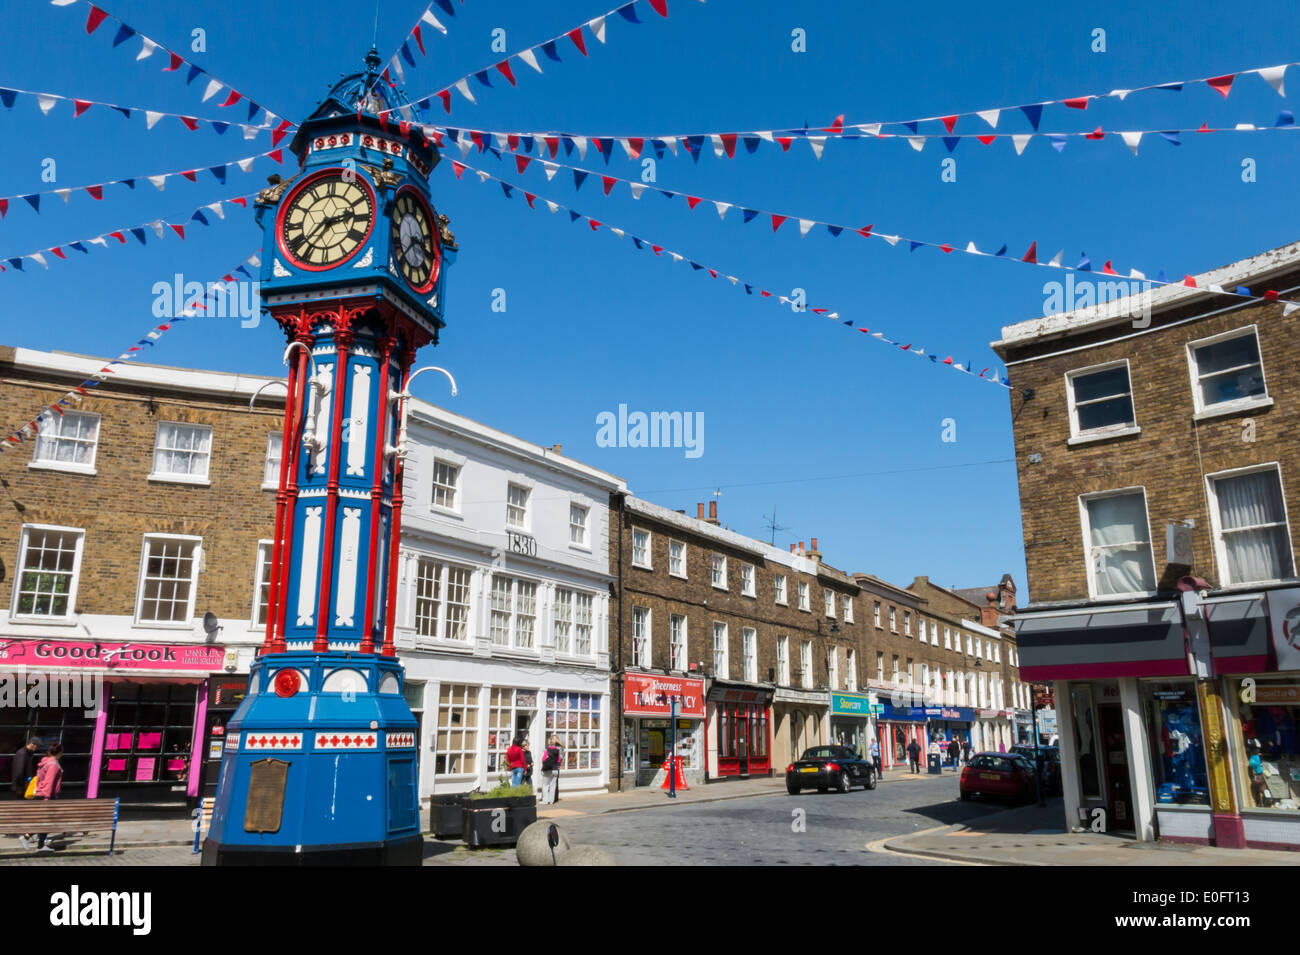 Ghisa Torre dell Orologio Sheerness Isle of Sheppey Kent Immagini Stock